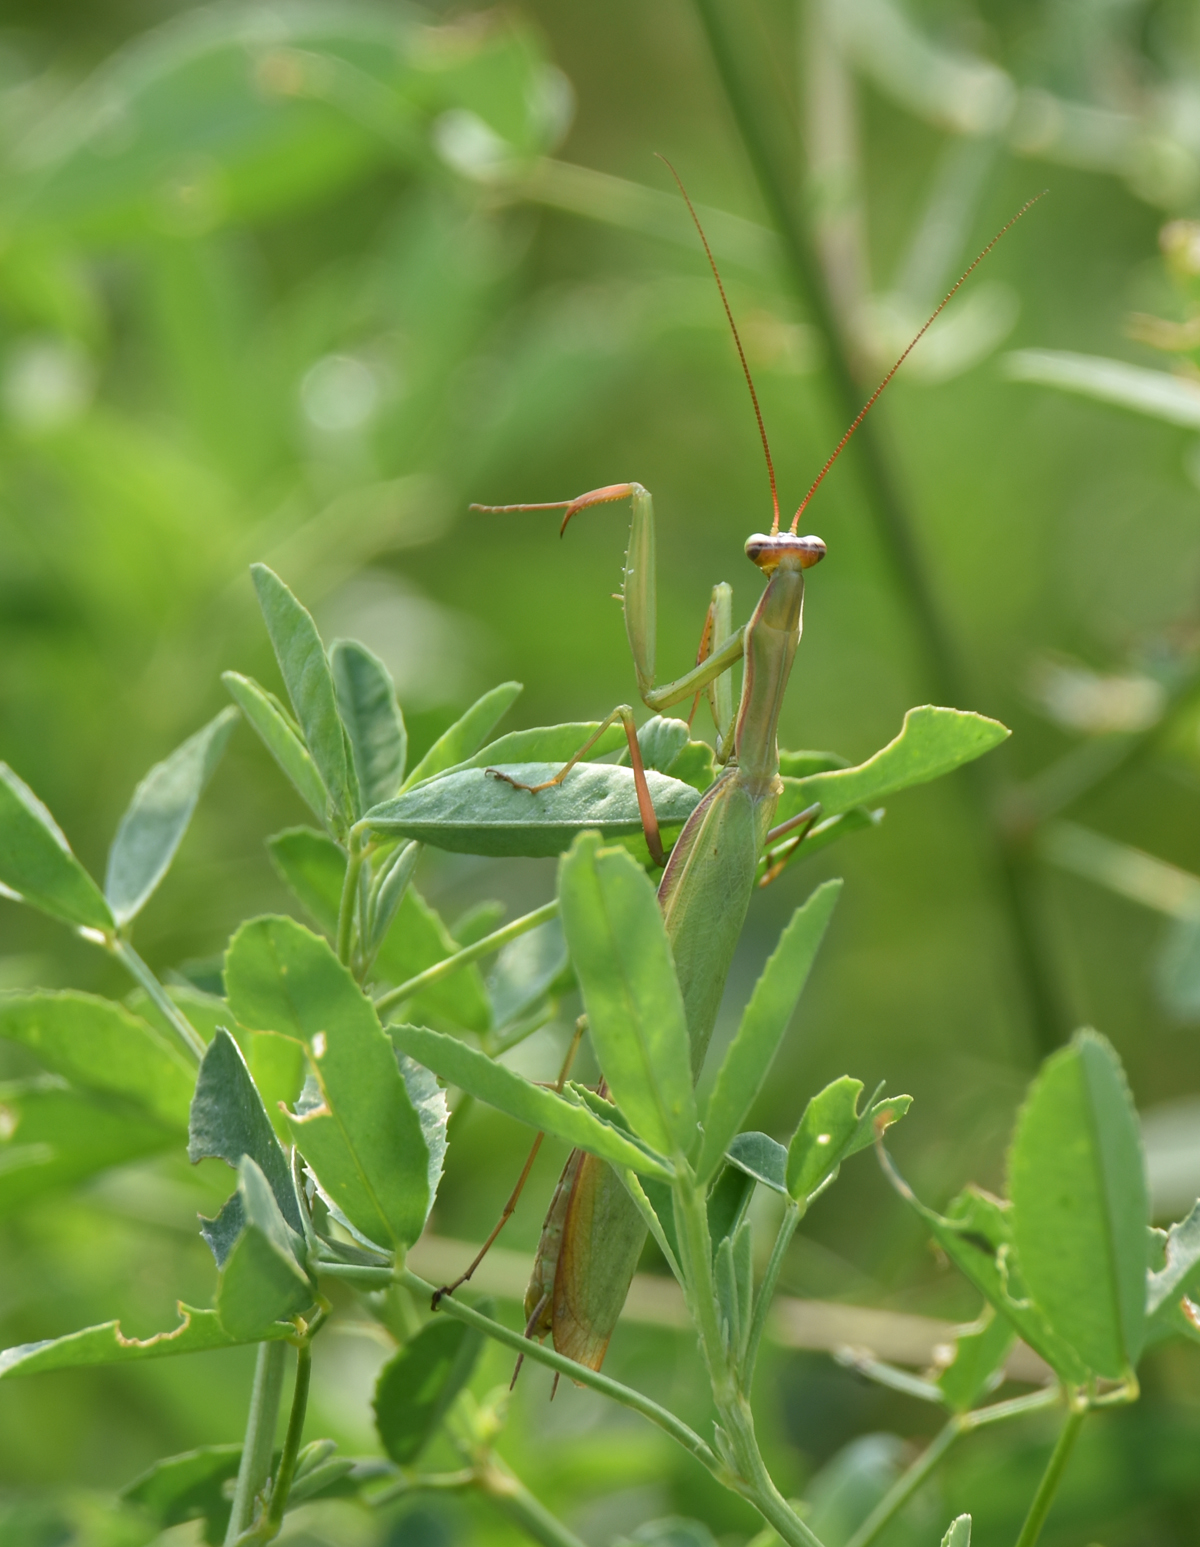 Photo of Praying Mantis Urquhart on NaturalCrooksDotCom